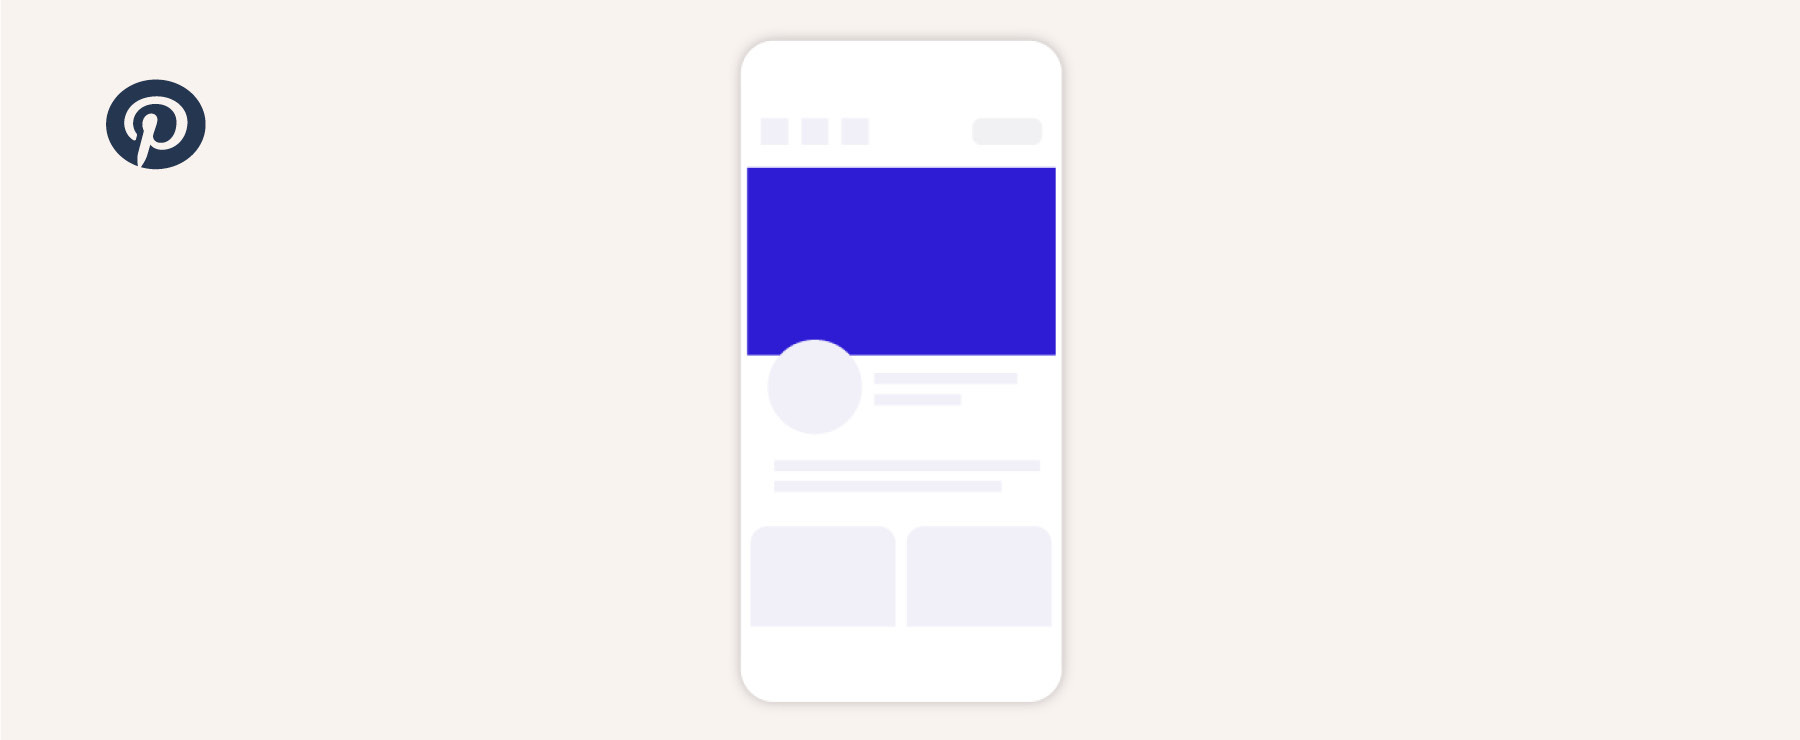 Pinterest board cover image size guide